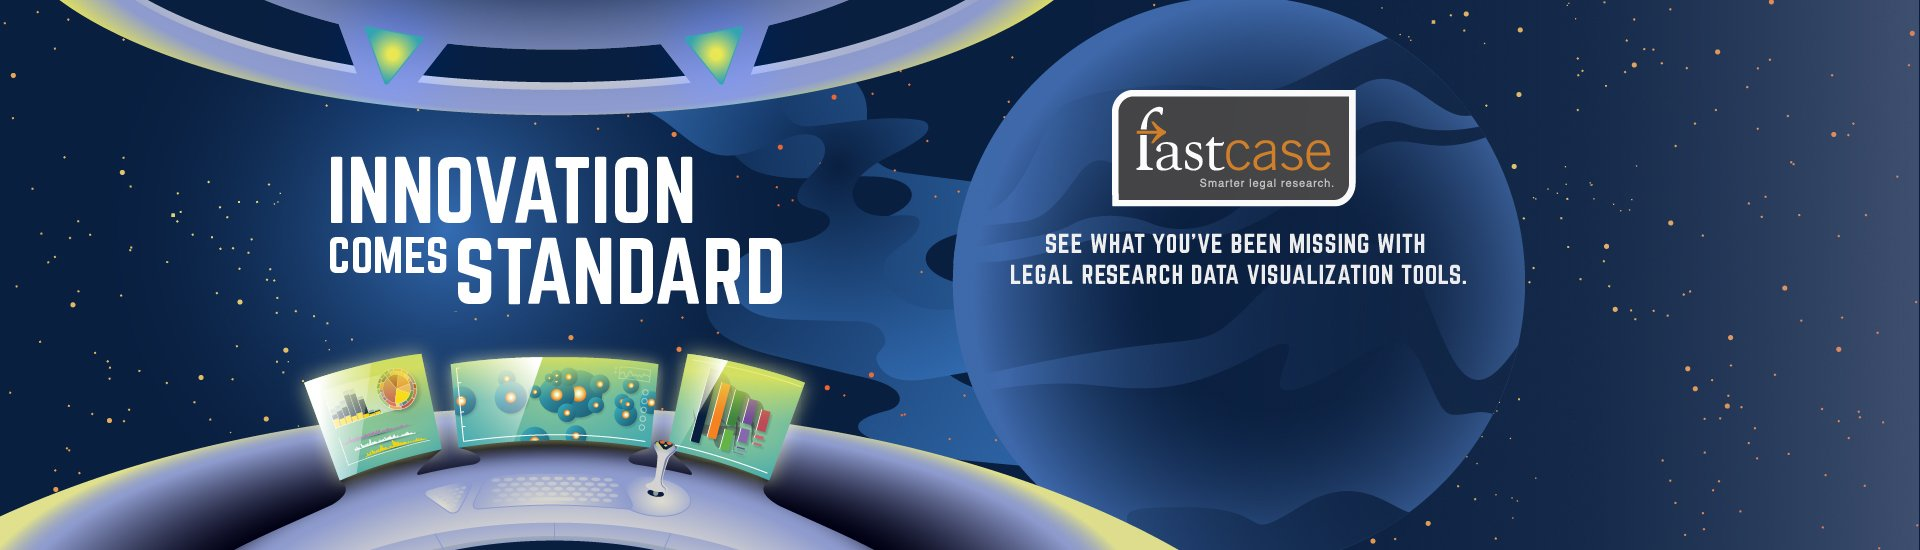 All Bar members get free access to Fastcase.